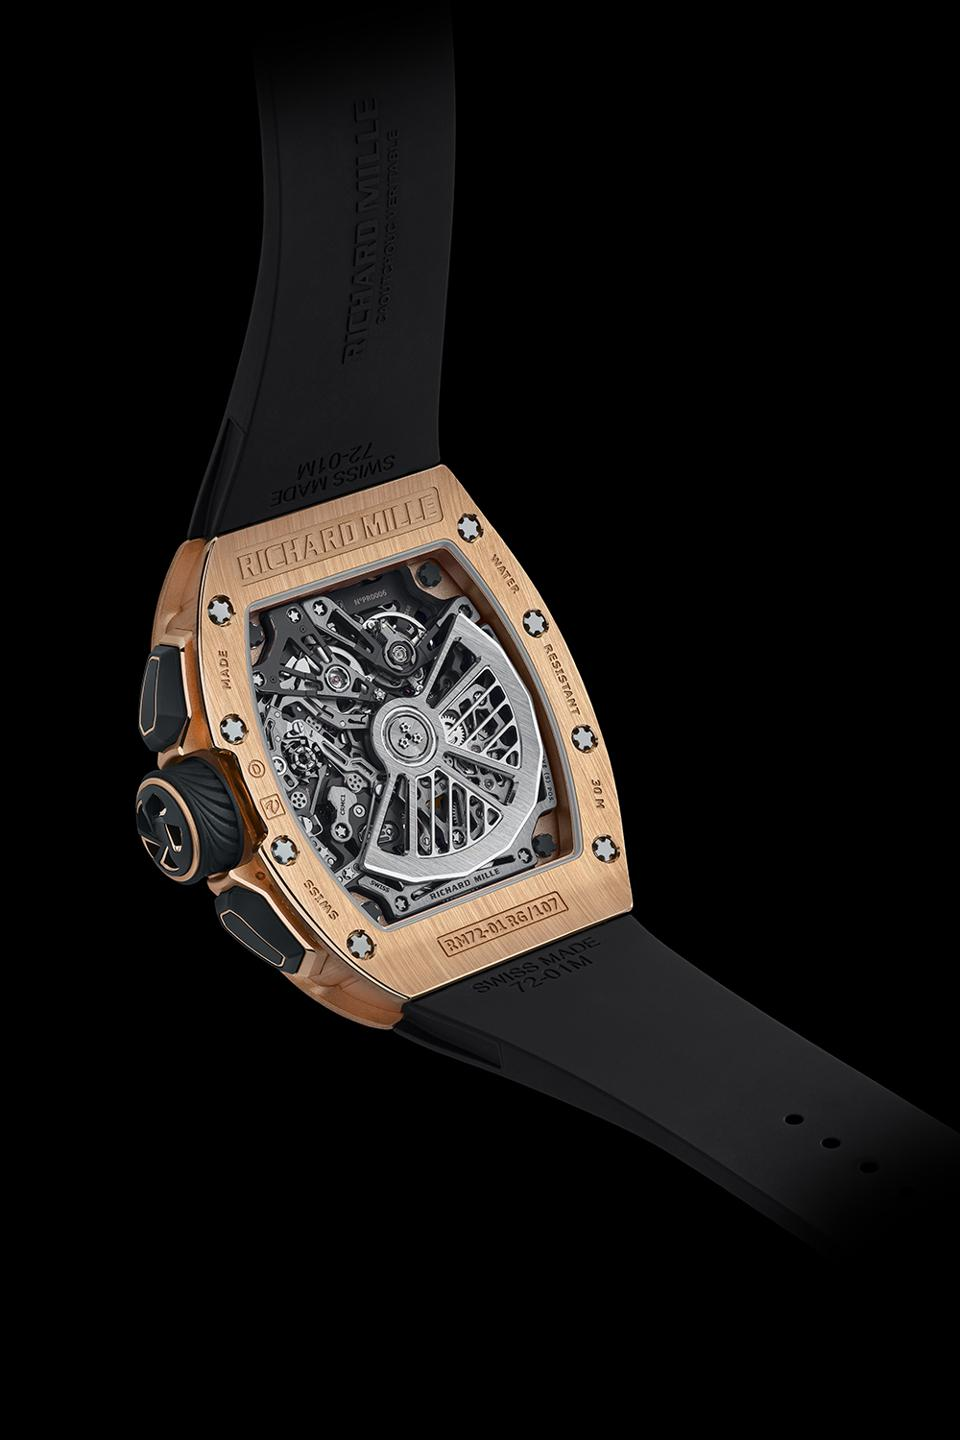 The open caseback of the Richard Mille RM 72-01 Lifestyle In-House Chronograph shows the new movement, caliber CRMC1.